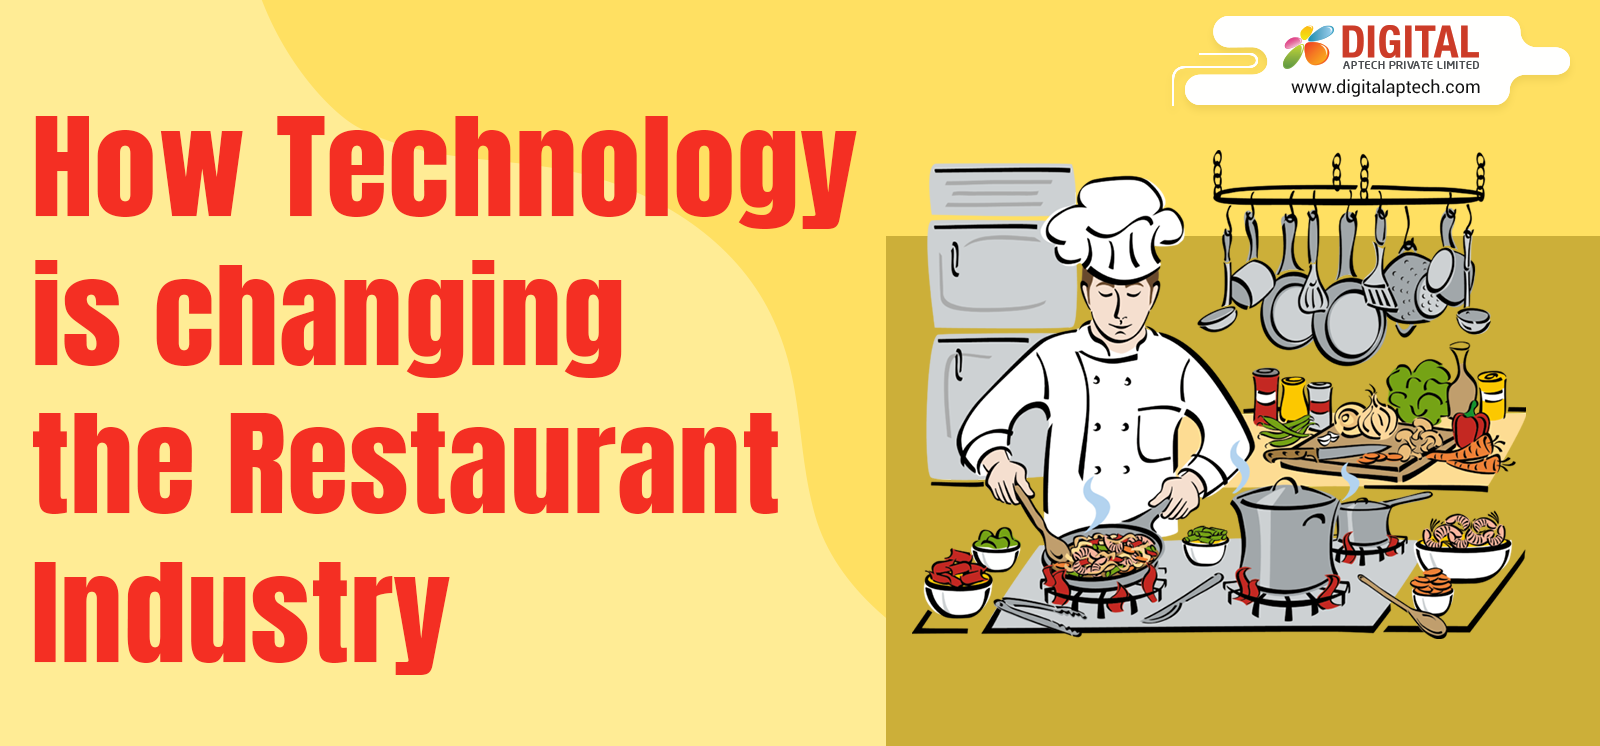 How Technology is changing the Restaurant Industry